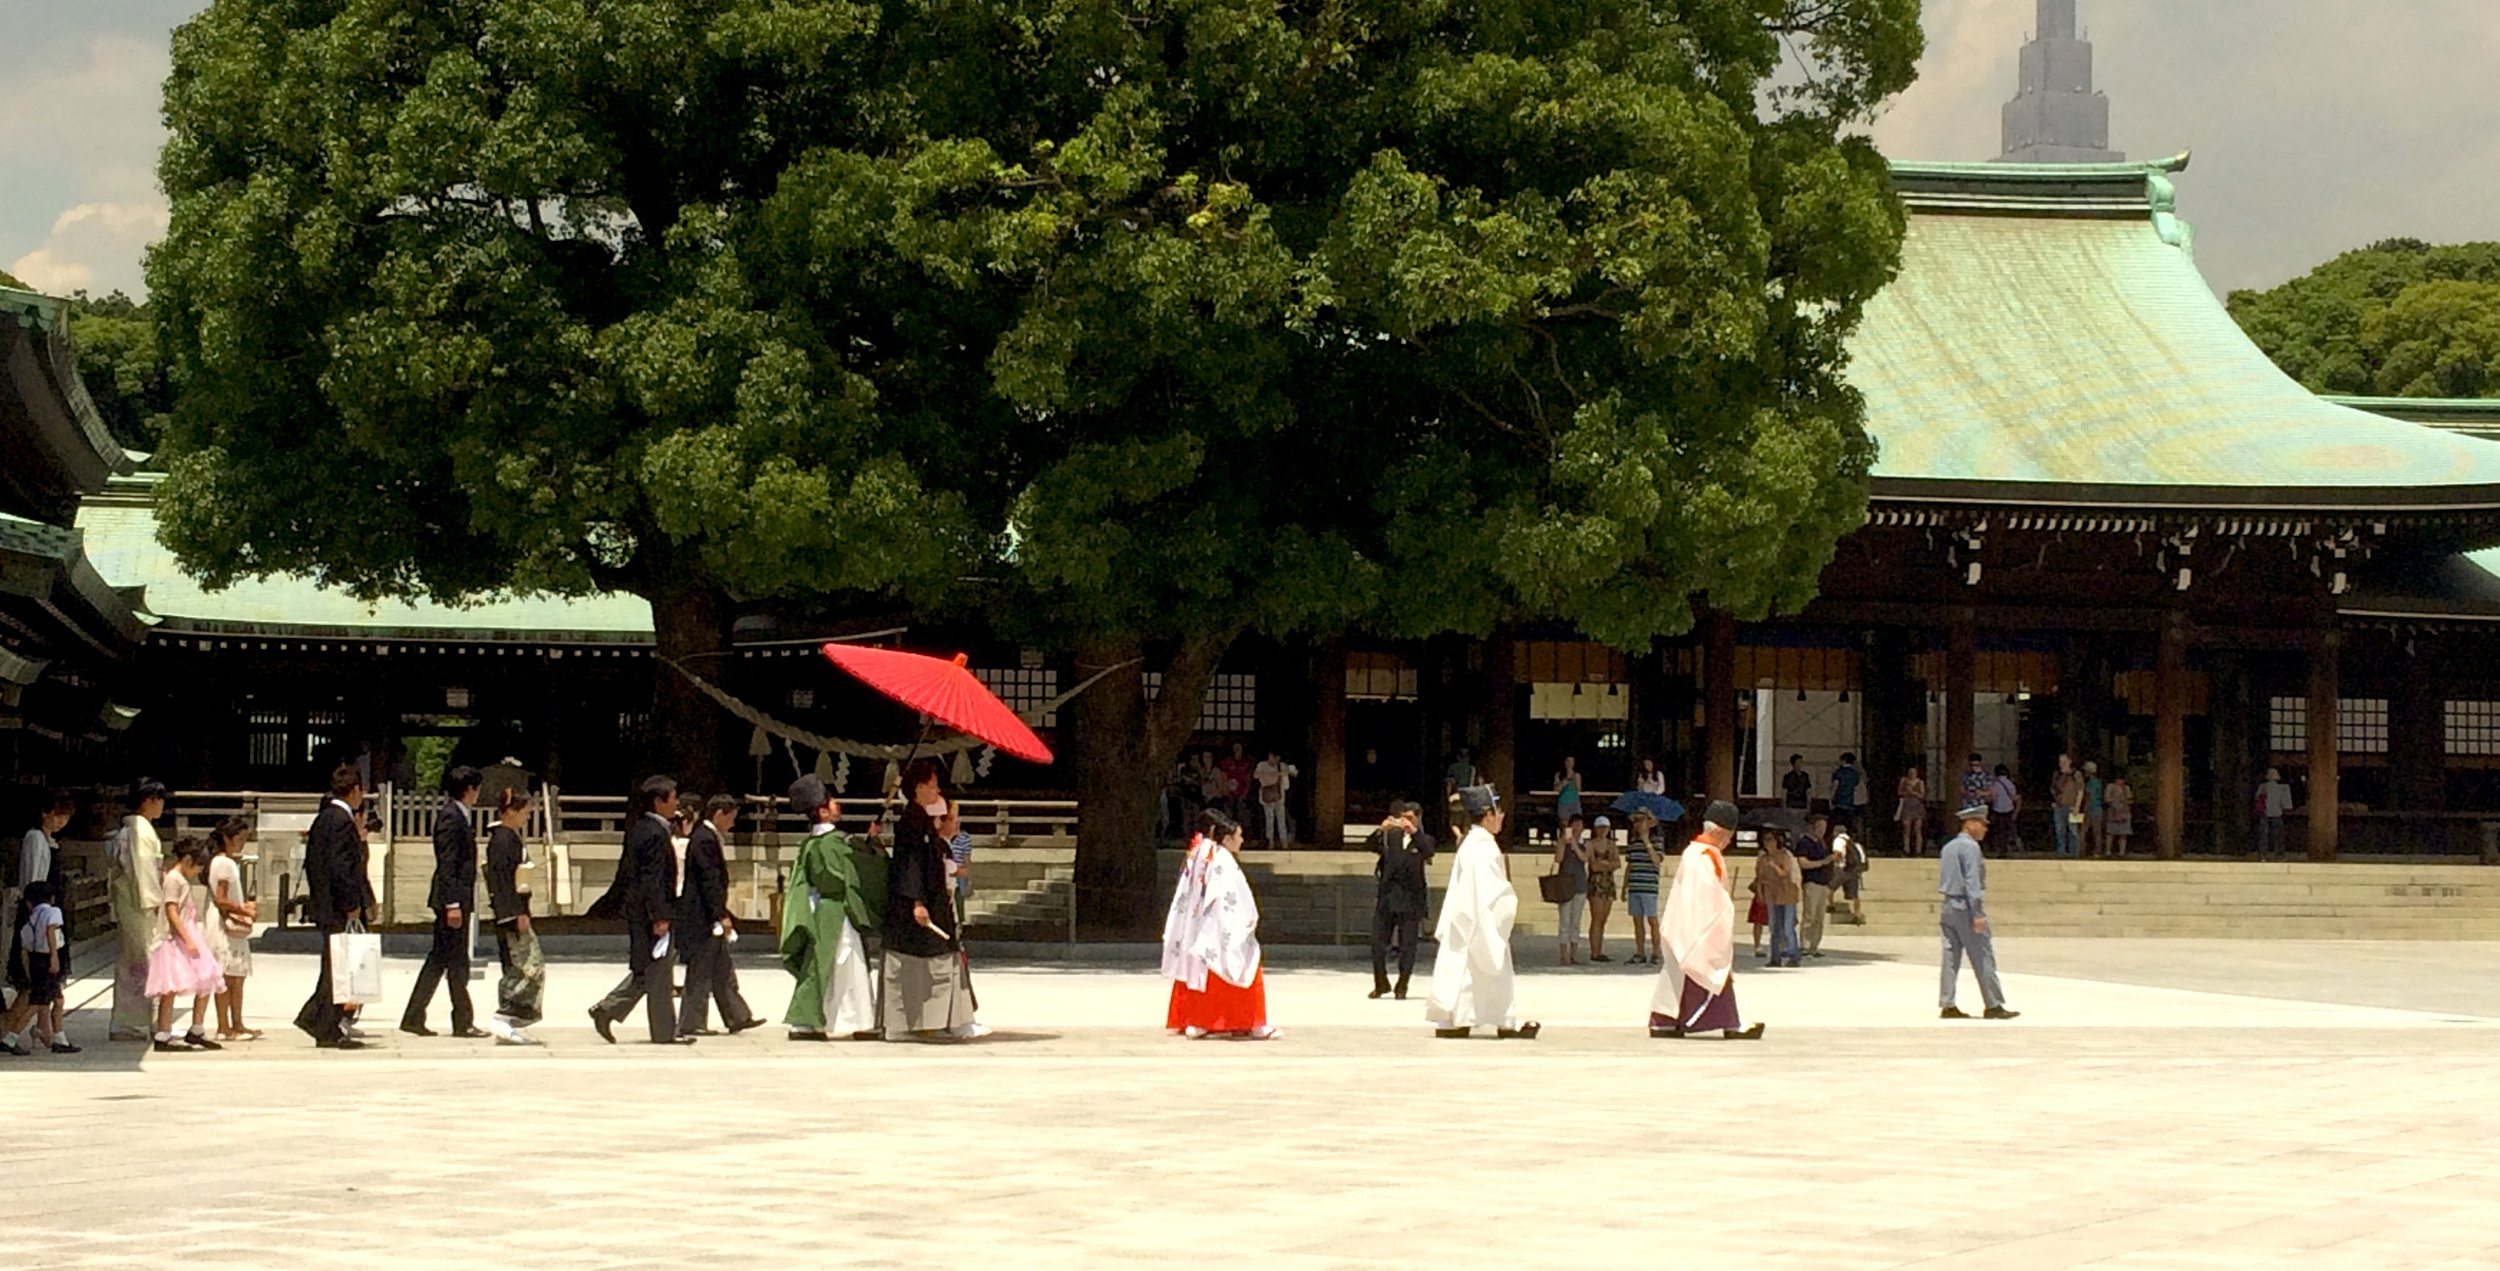 A traditional Shinto wedding I captured walking through a temple in Tokyo, Japan. Generations of tradition here.